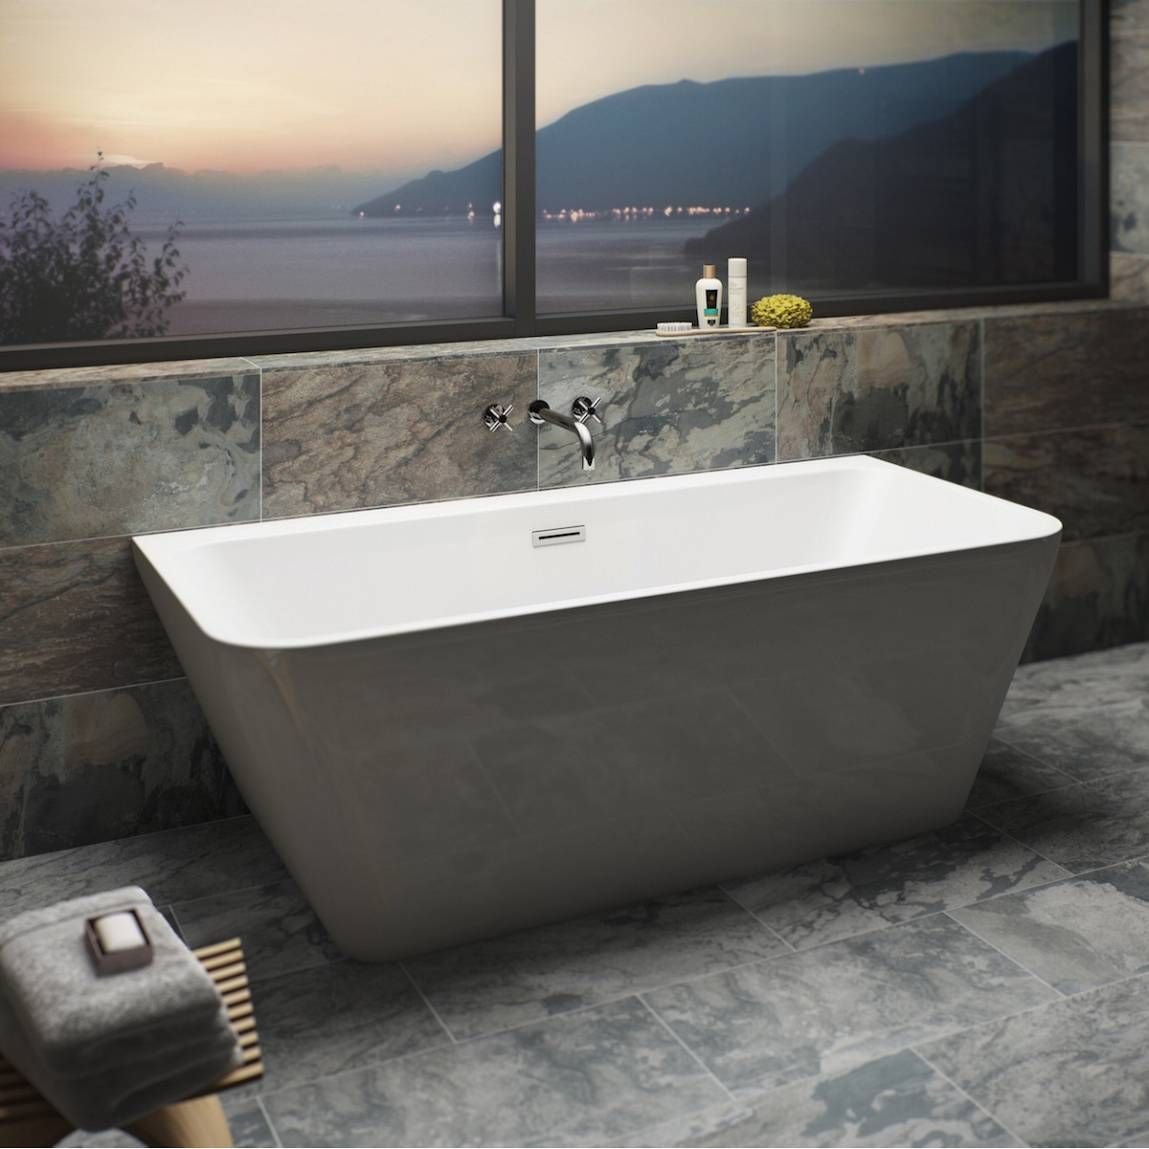 Mode Carter back to wall bath | Bath soap, Soap dishes and Bath